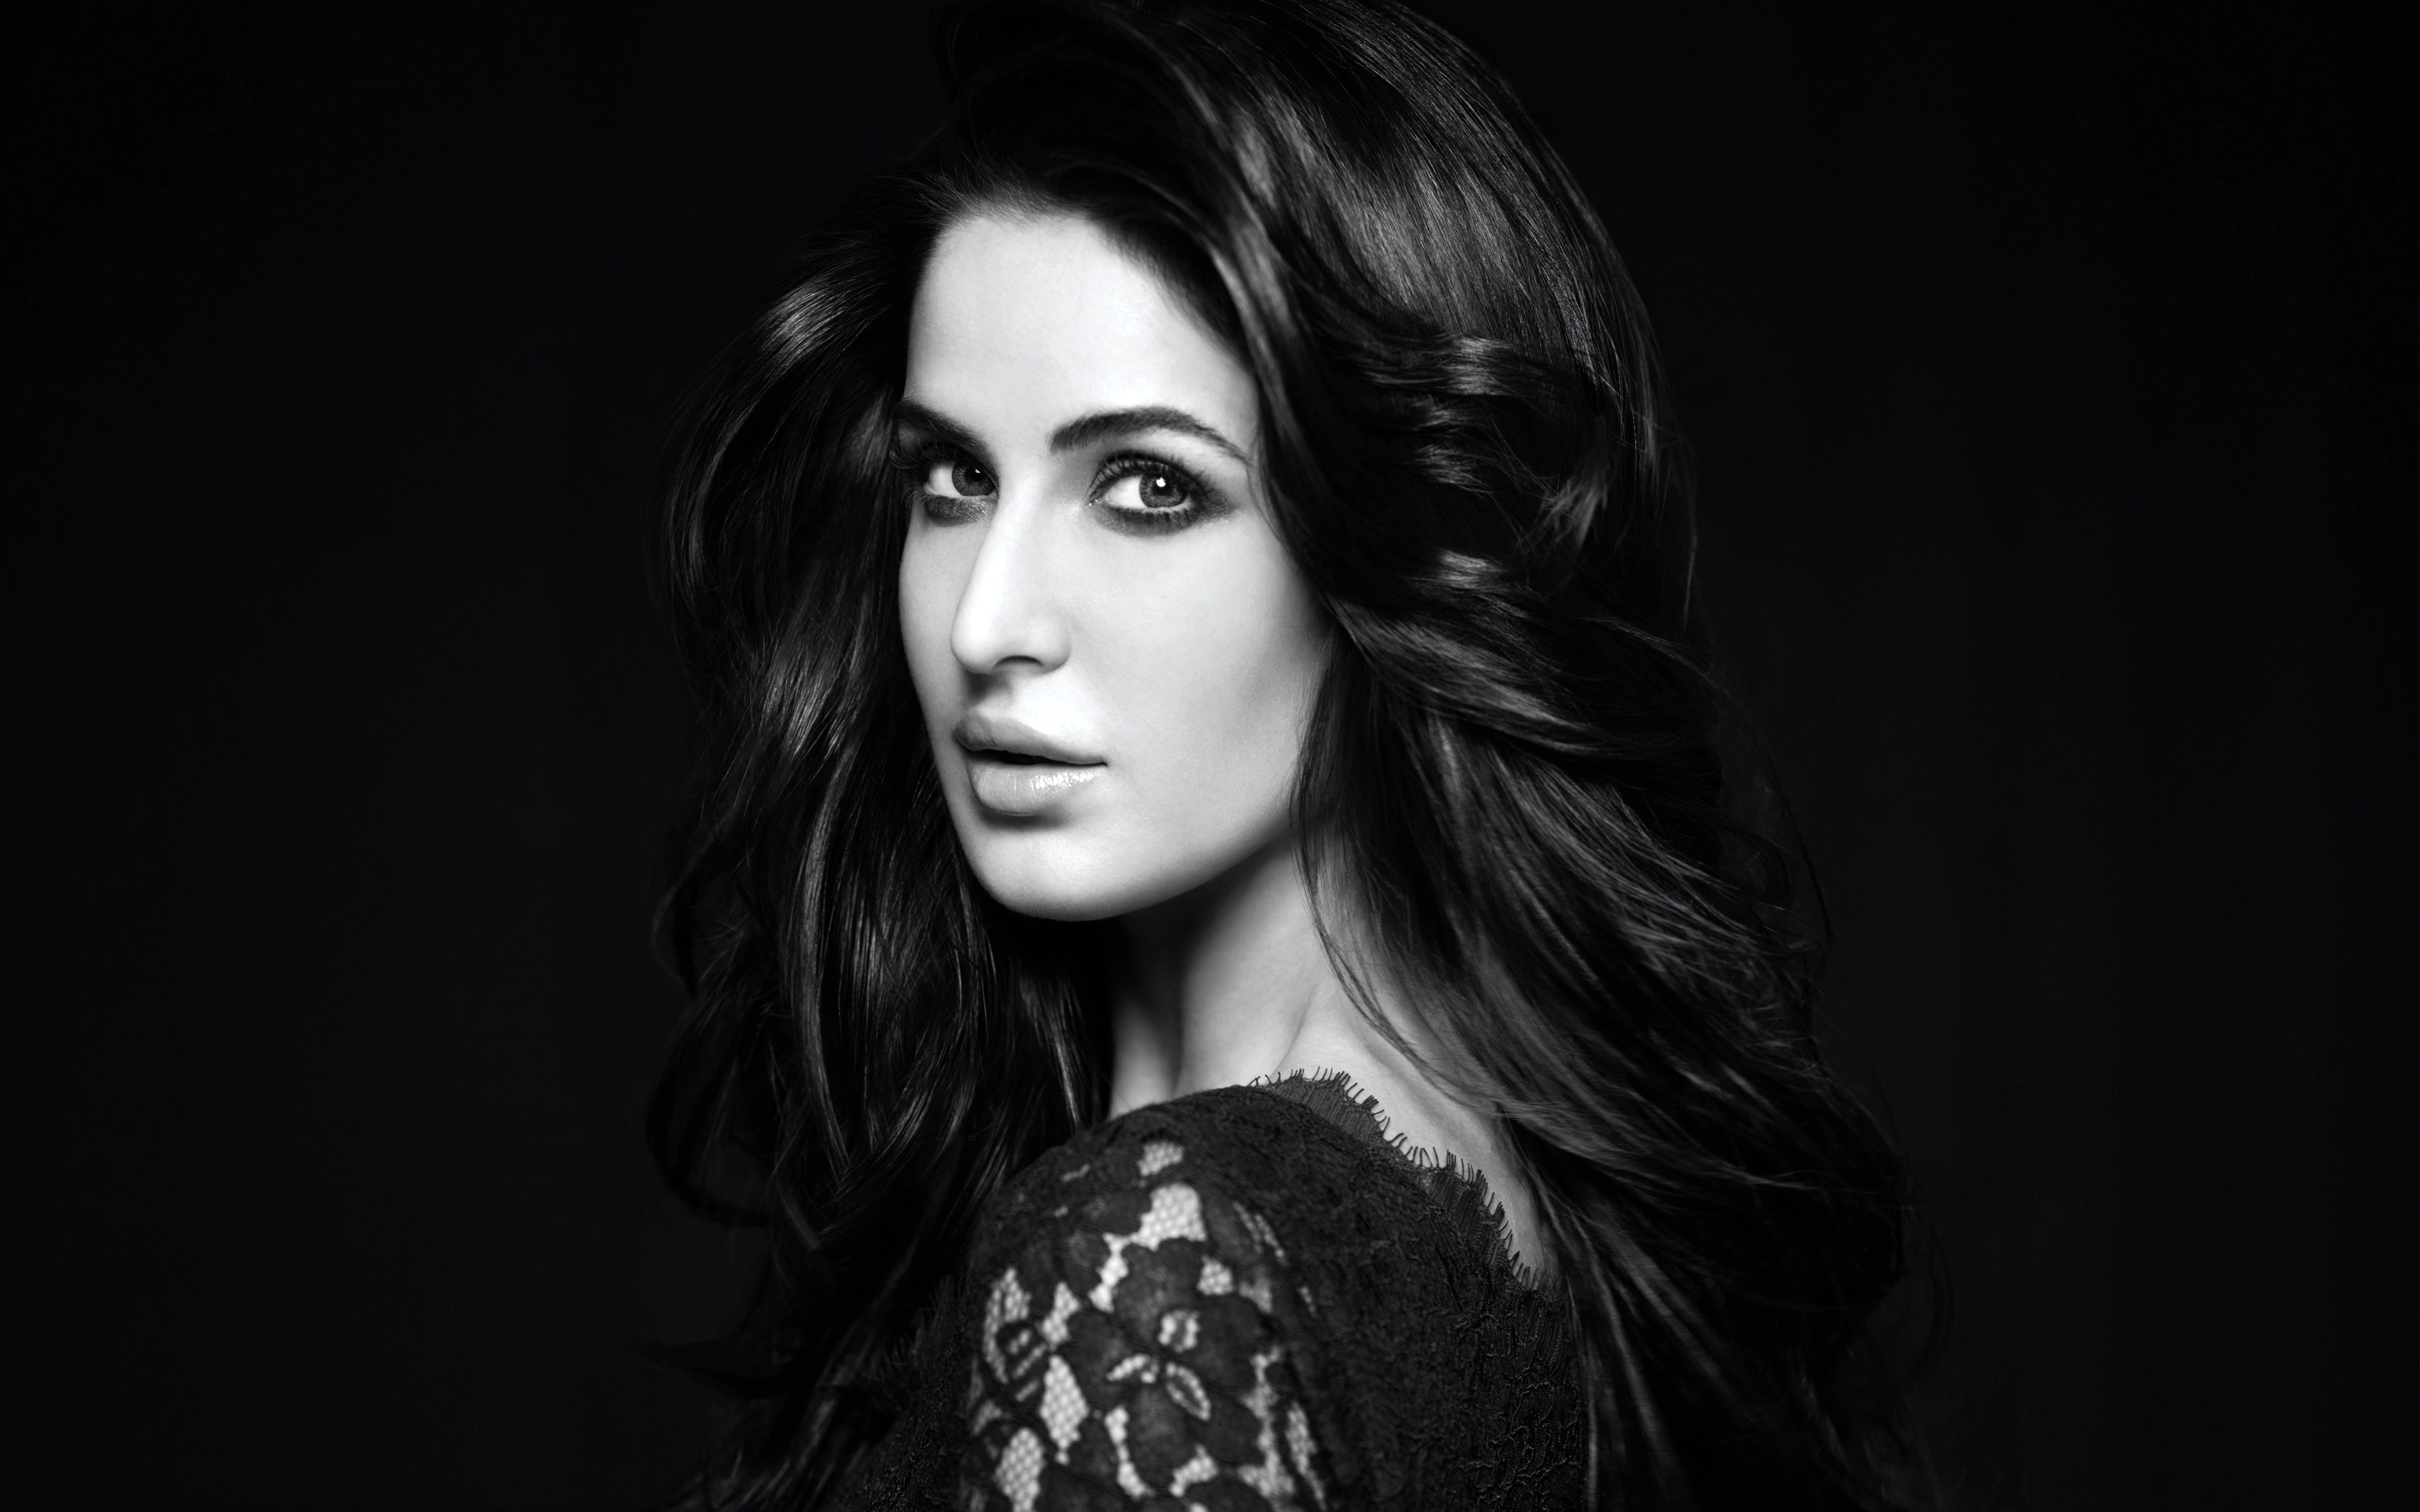 Wallpaper download katrina kaif - Super Exciting Facts About Katrina Kaif Which You Wouldn T Be Aware